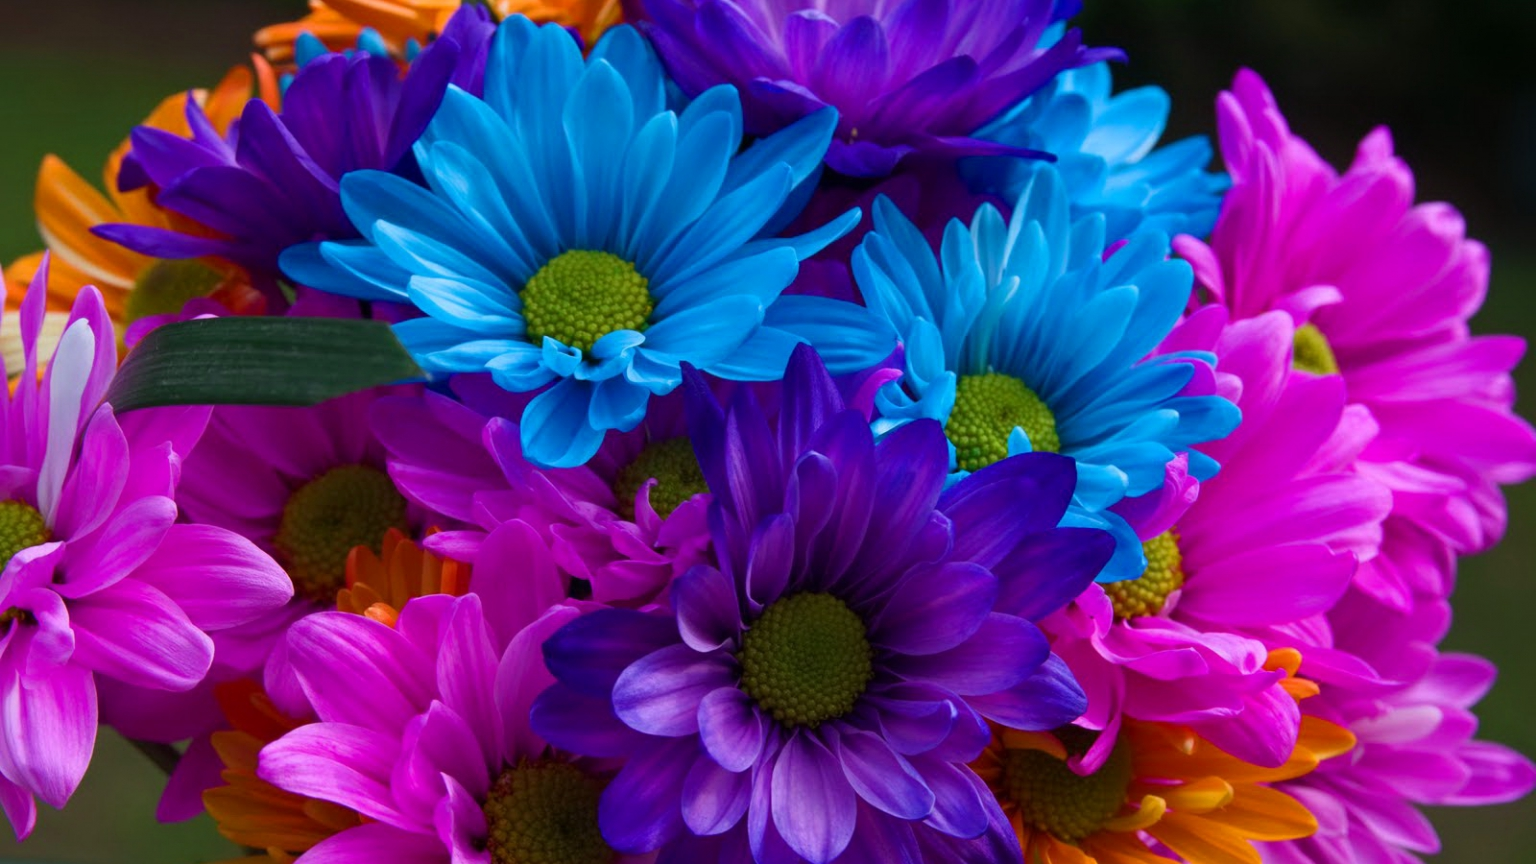 Free Colorful Flower Wallpaper Downloads: A Wild Bloom Wallpaper And Background Image